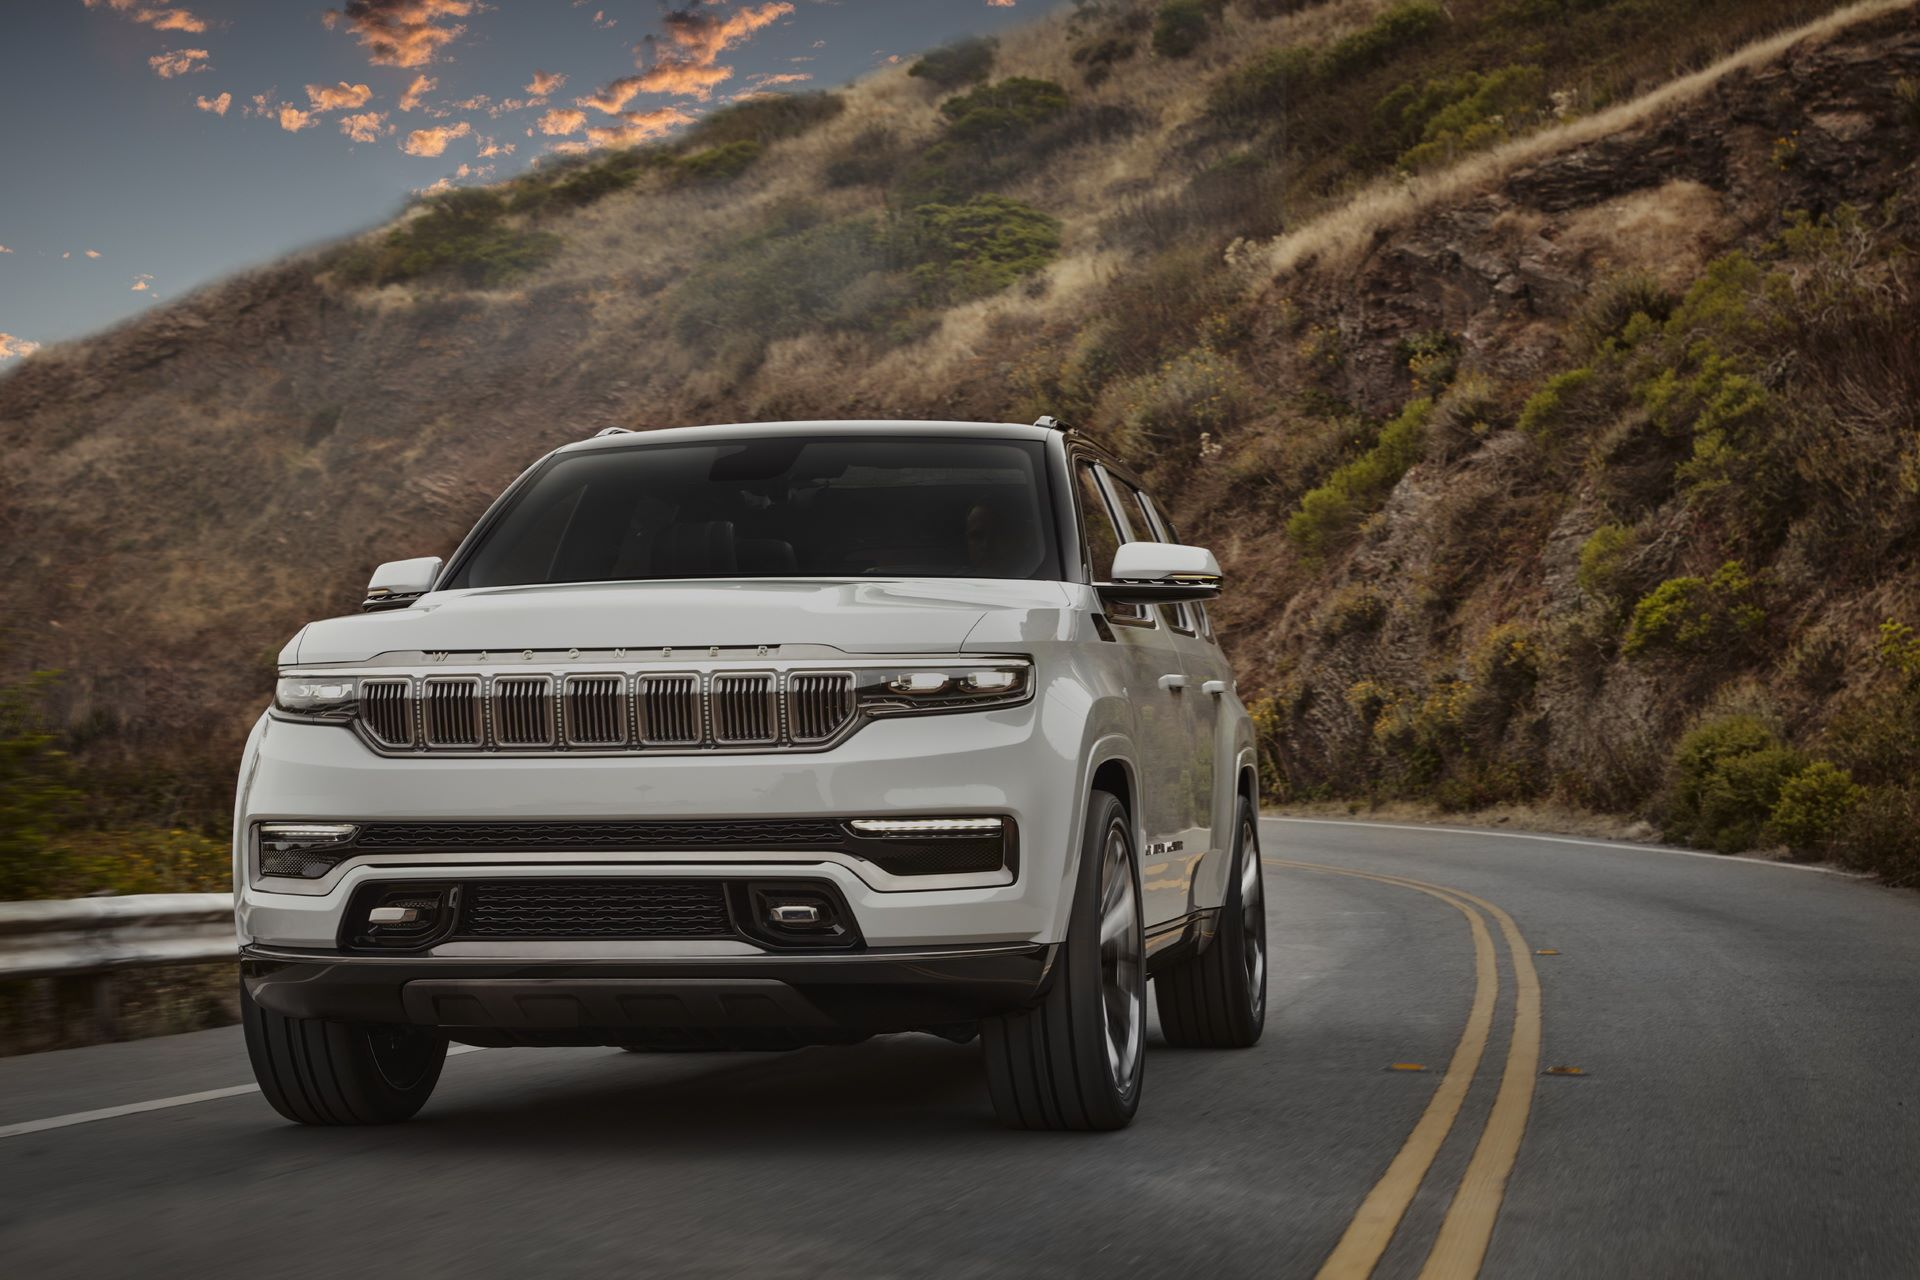 Jeep-Grand-Wagoneer-Concept-7